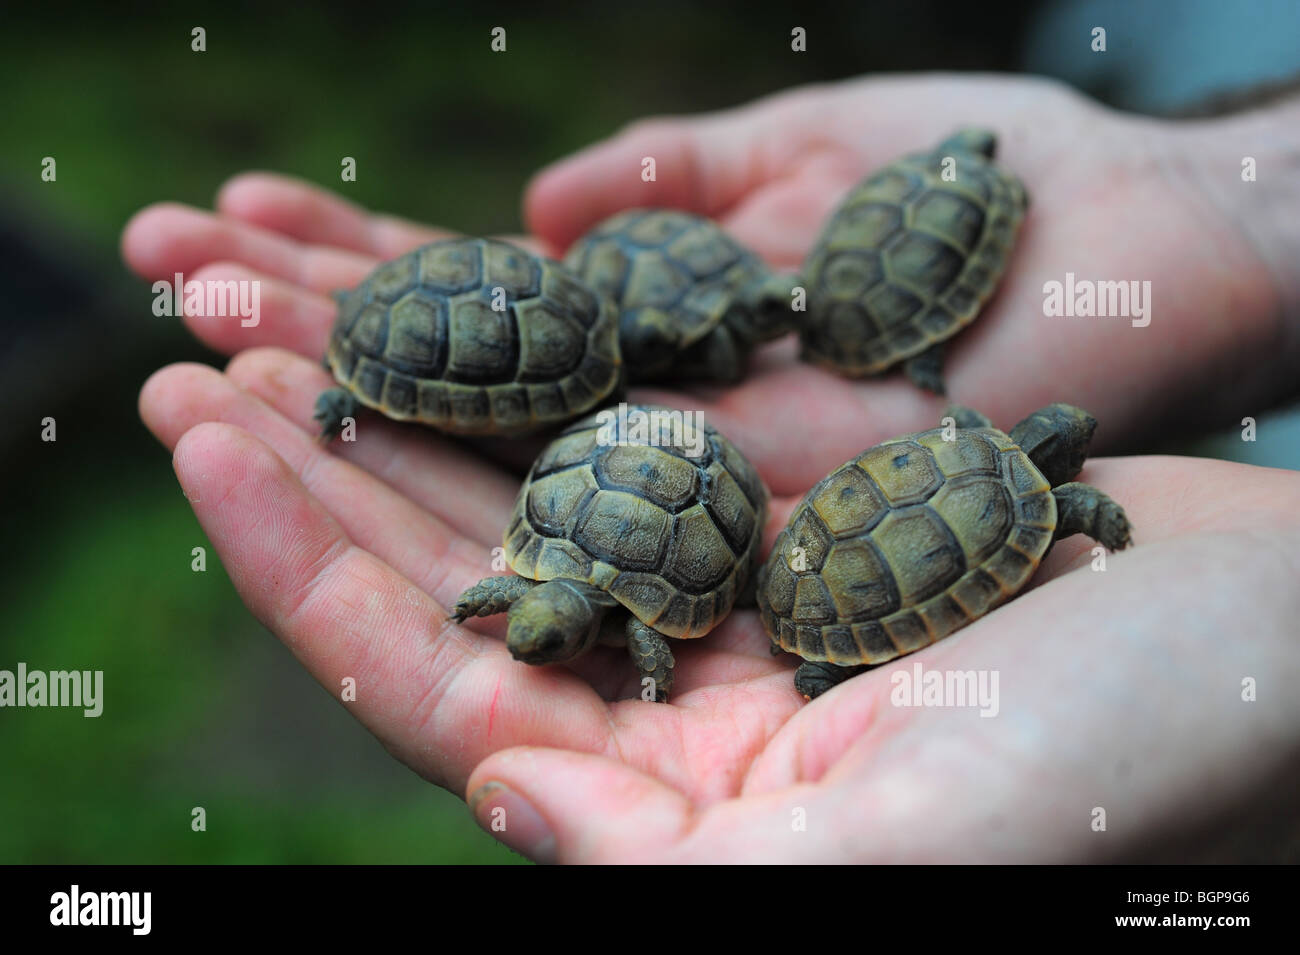 hands holding five baby very young tortoises - Stock Image